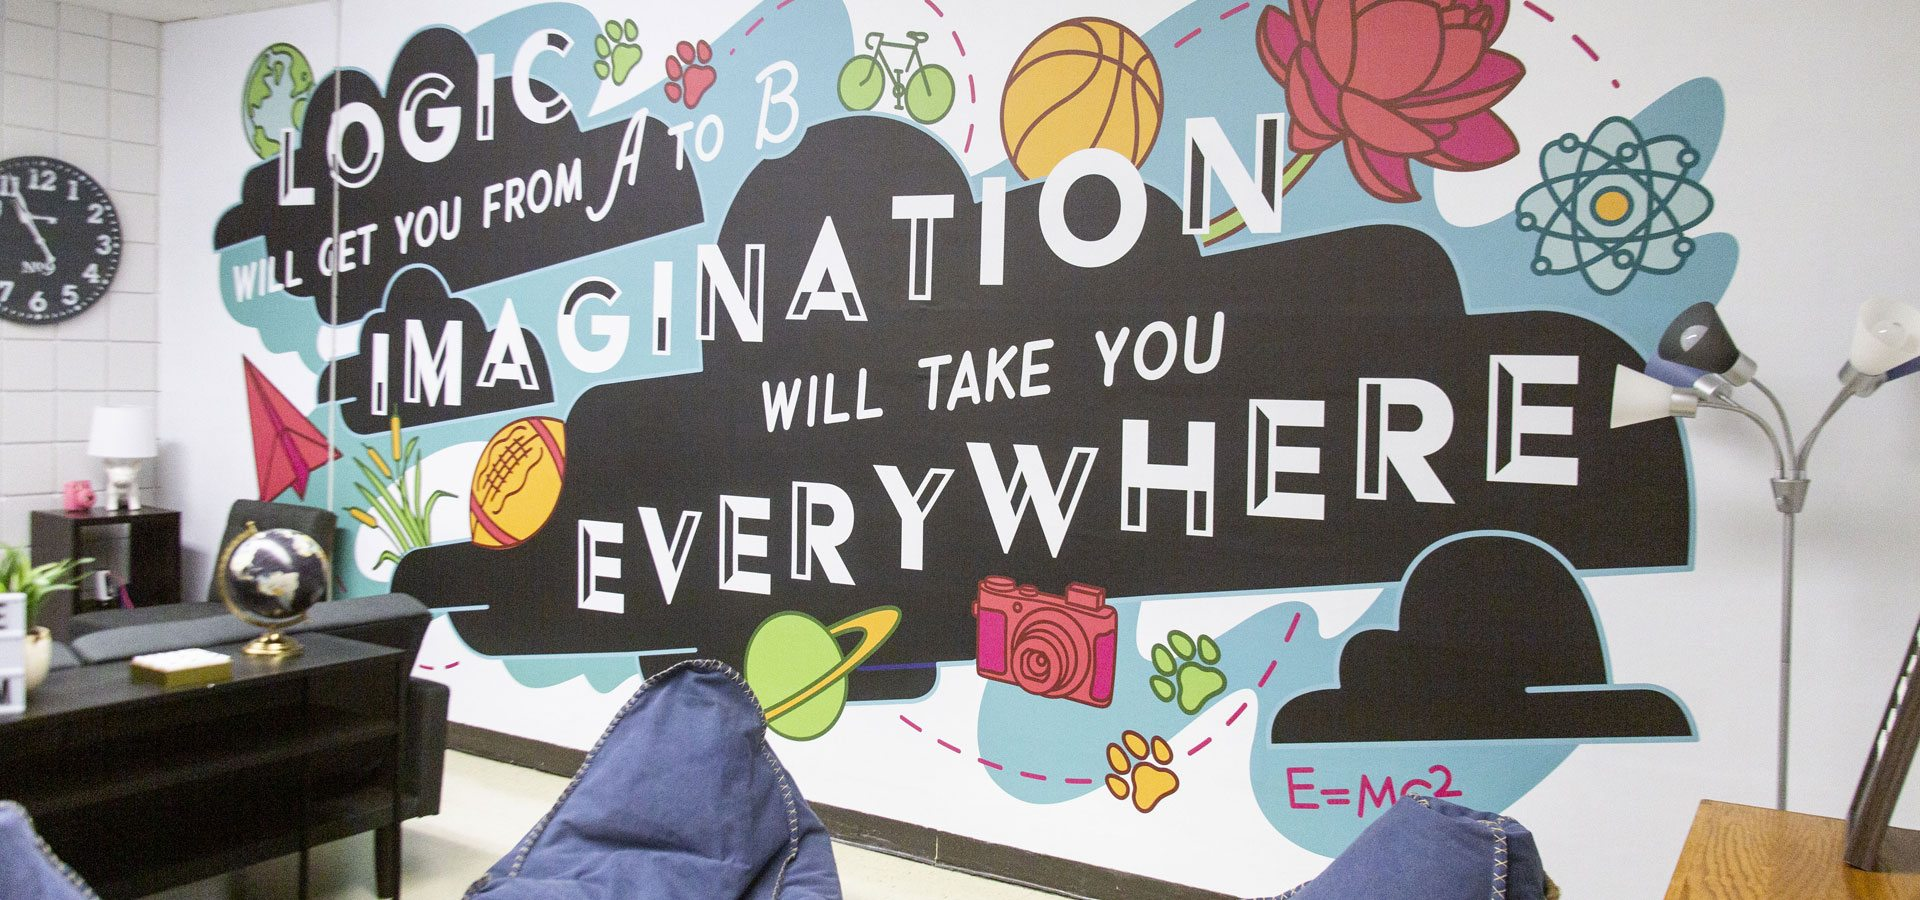 A decorative and digitally illustrated vinyl mural with the words logic will get you from A to B, imagination will take you everywhere